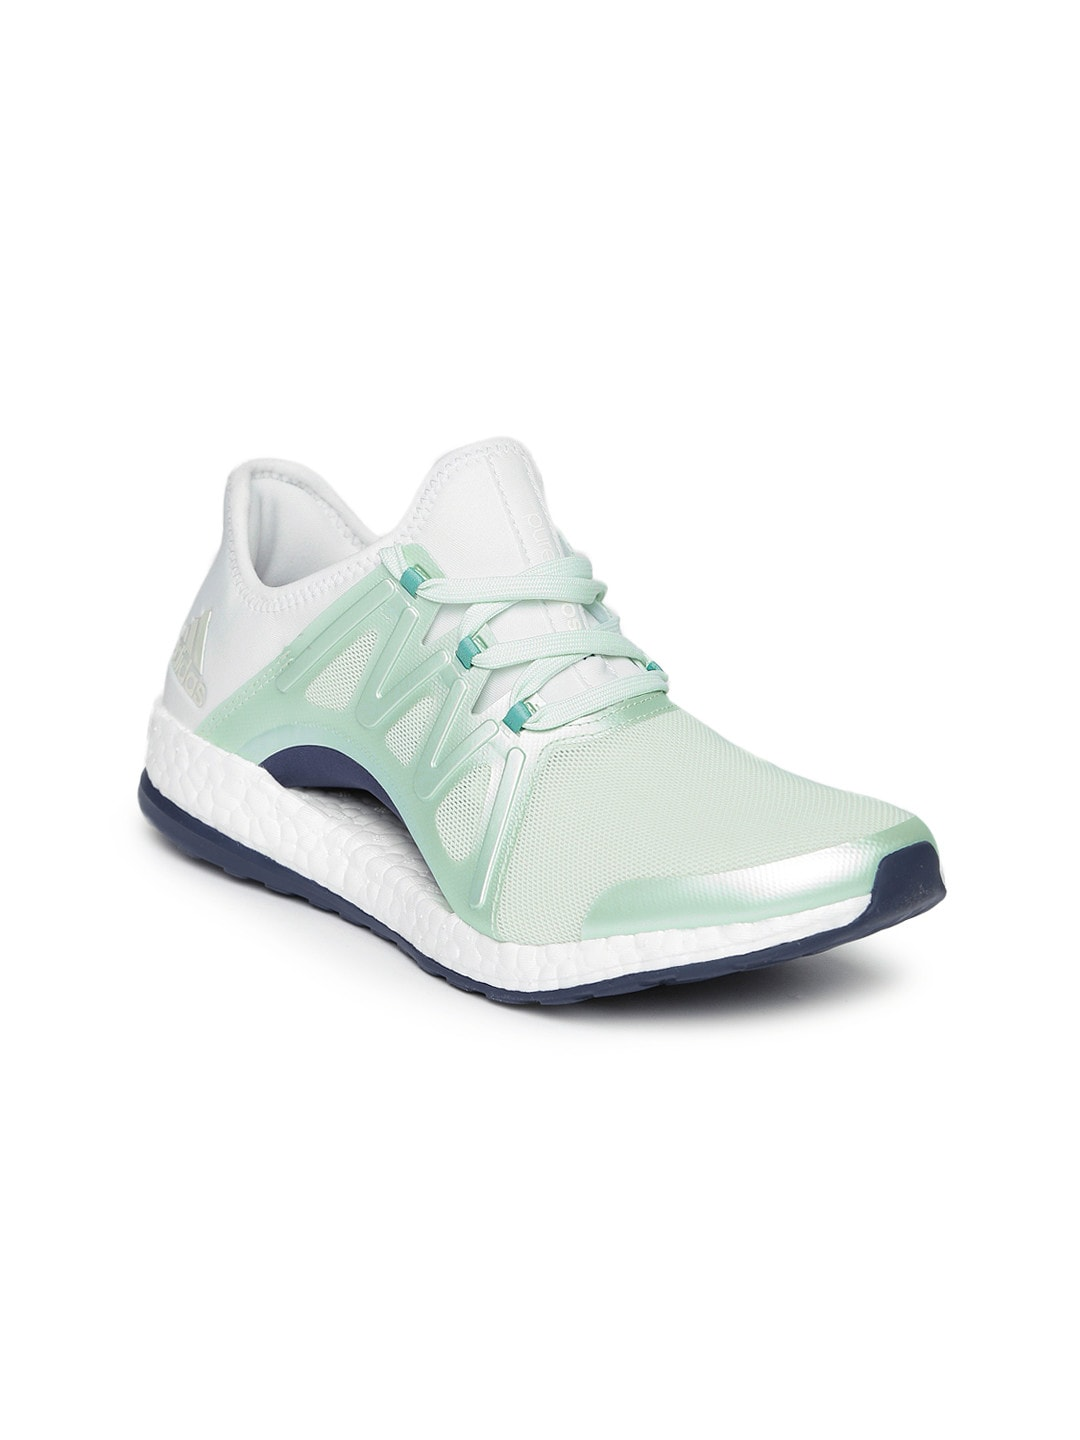 45c555c69 Adidas bb1732 Women Green And White Pureboost Xpose Running Shoes- Price in  India